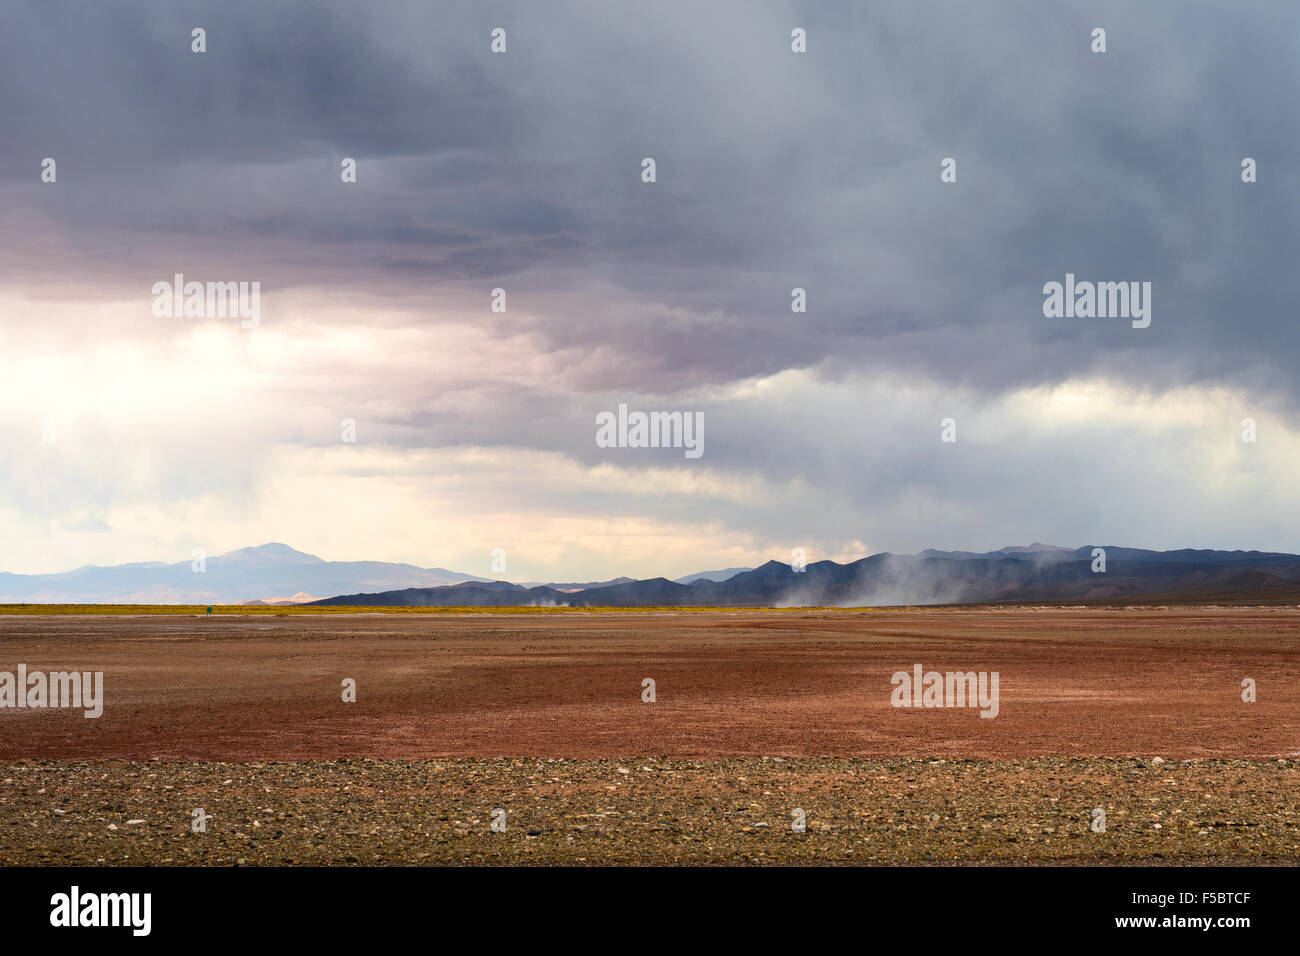 Emergence of dust storms in the desert of Salinas Grandes, northern Argentina - Stock Image